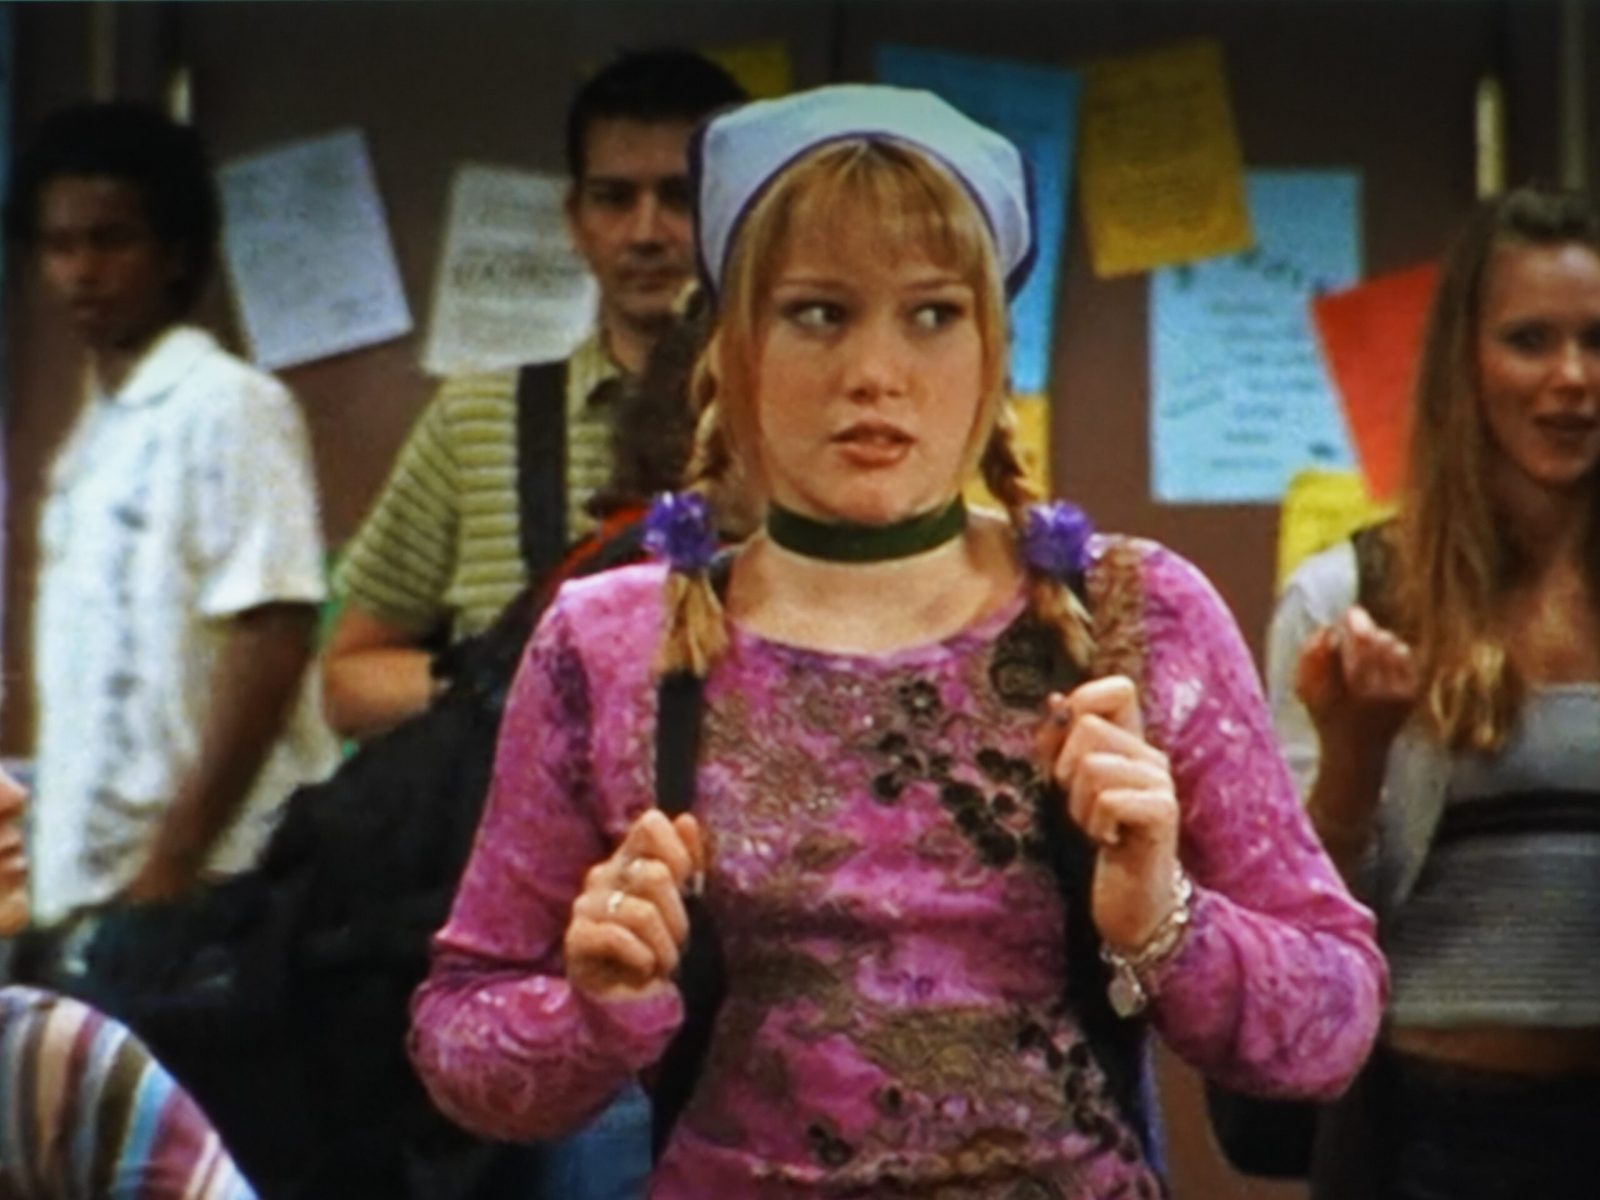 Lizzie, That Outfit is Amazing!